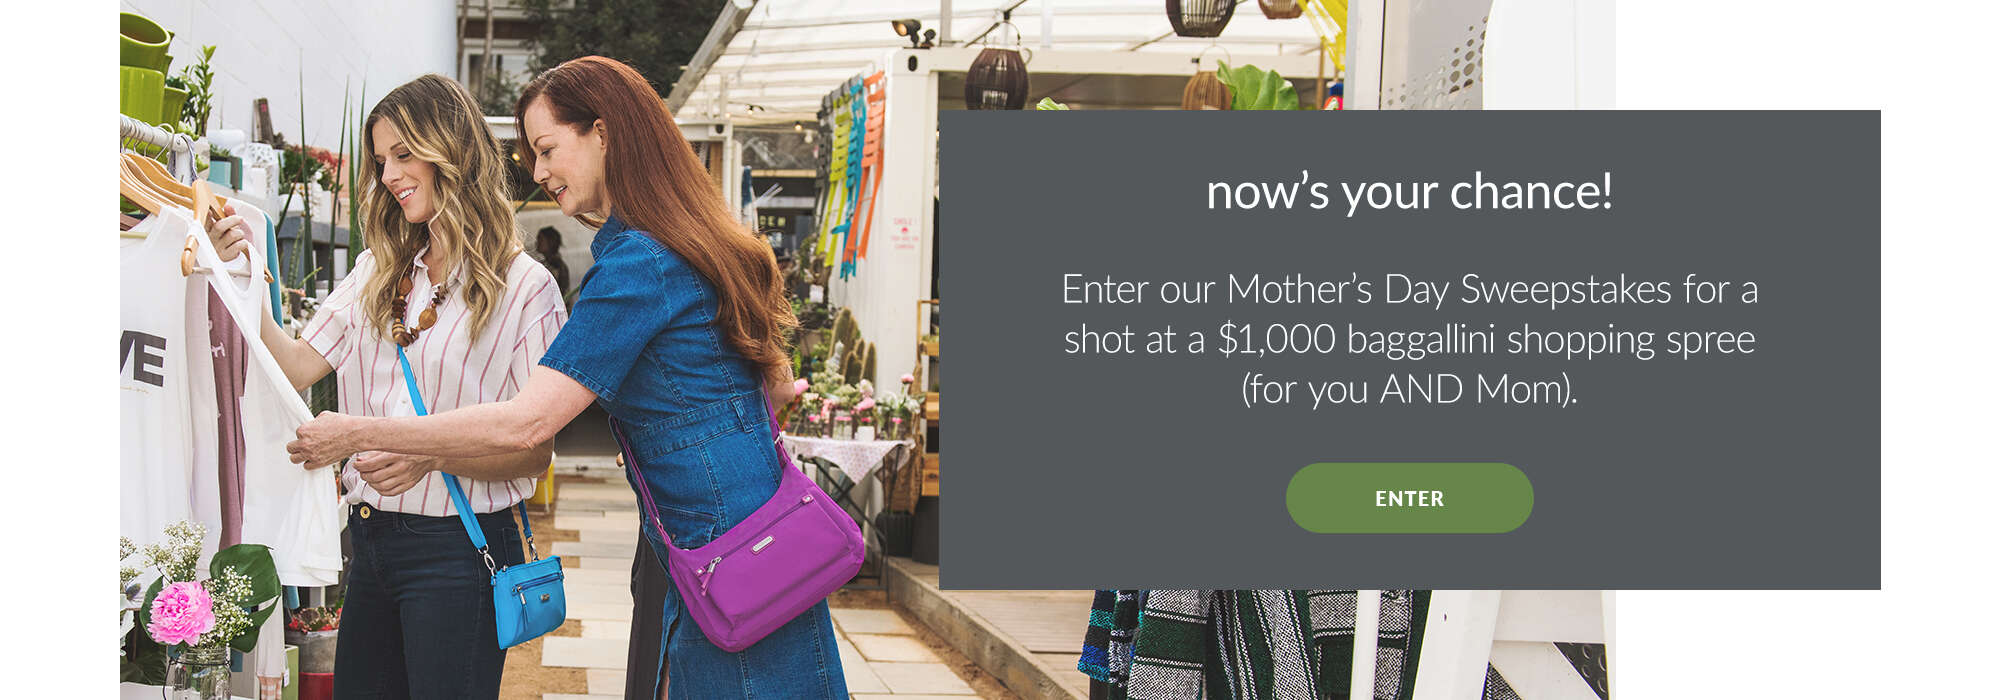 now's your chance! Enter our Mother's Day Sweepstakes for a shot at a $1000 baggallini shopping spree